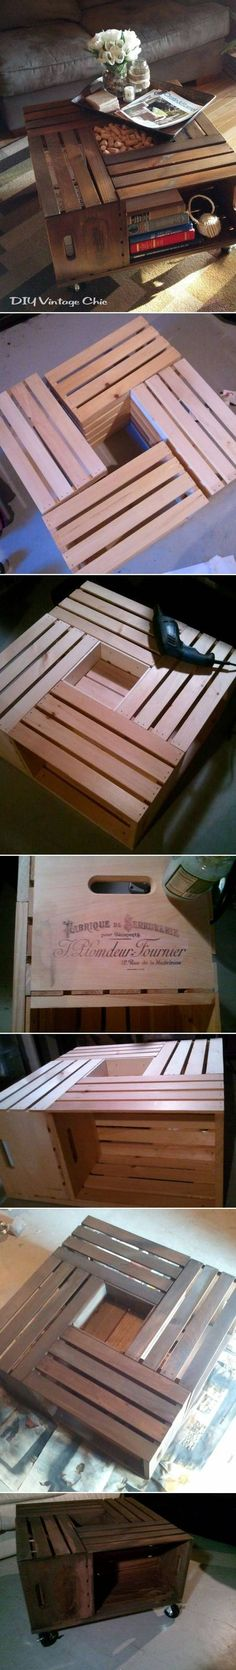 Still really want to make this!!!  DIY Wine Crate Table DIY Projects / UsefulDIY.com